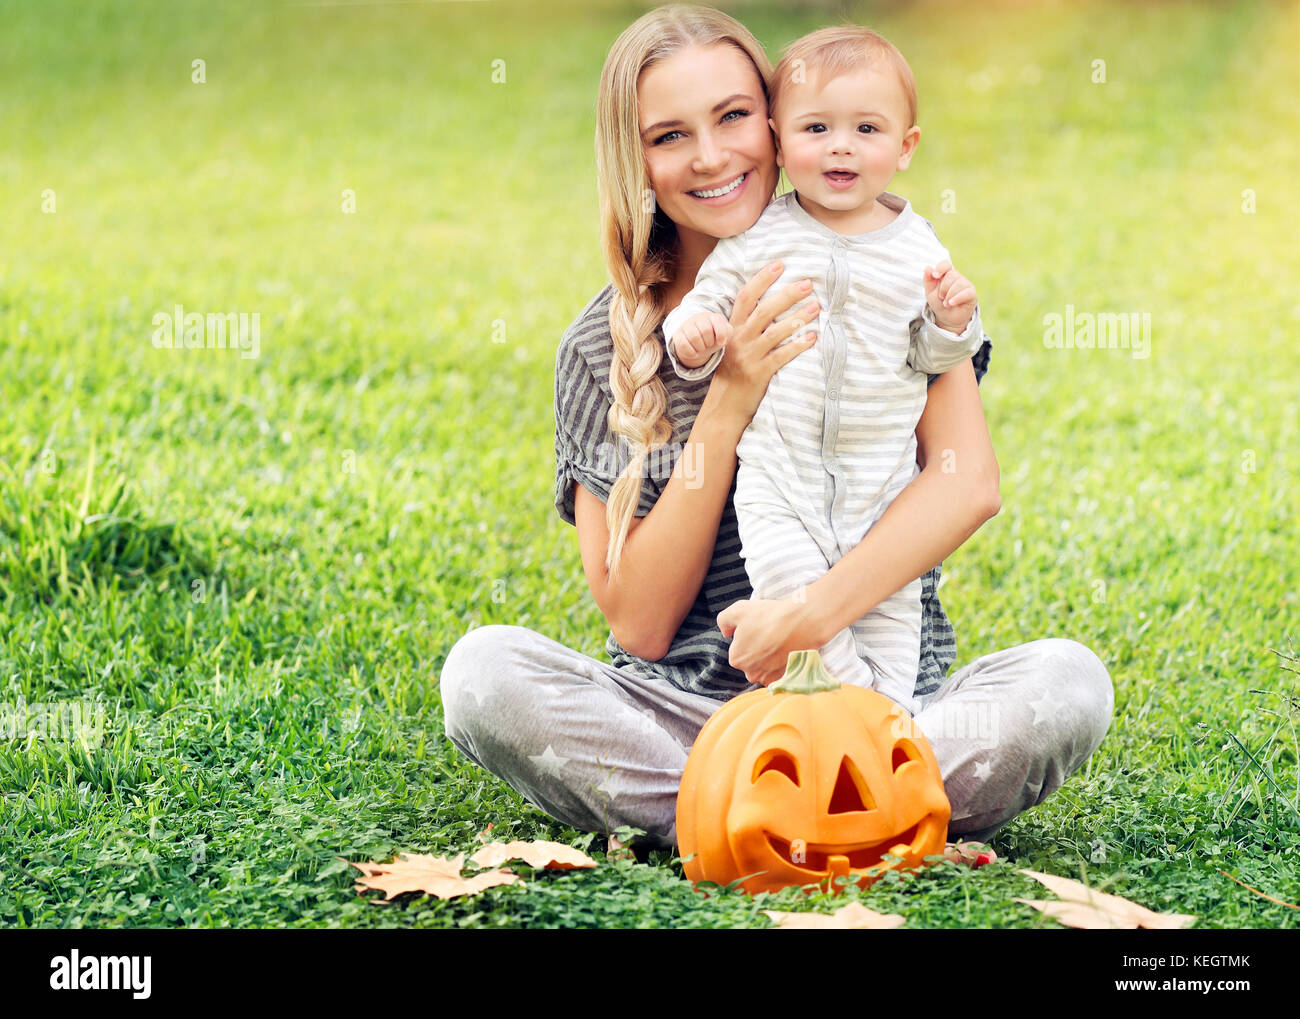 Mother with baby enjoying Halloween holiday outdoors, sitting on fresh green grass field, traditional festive decoration, - Stock Image